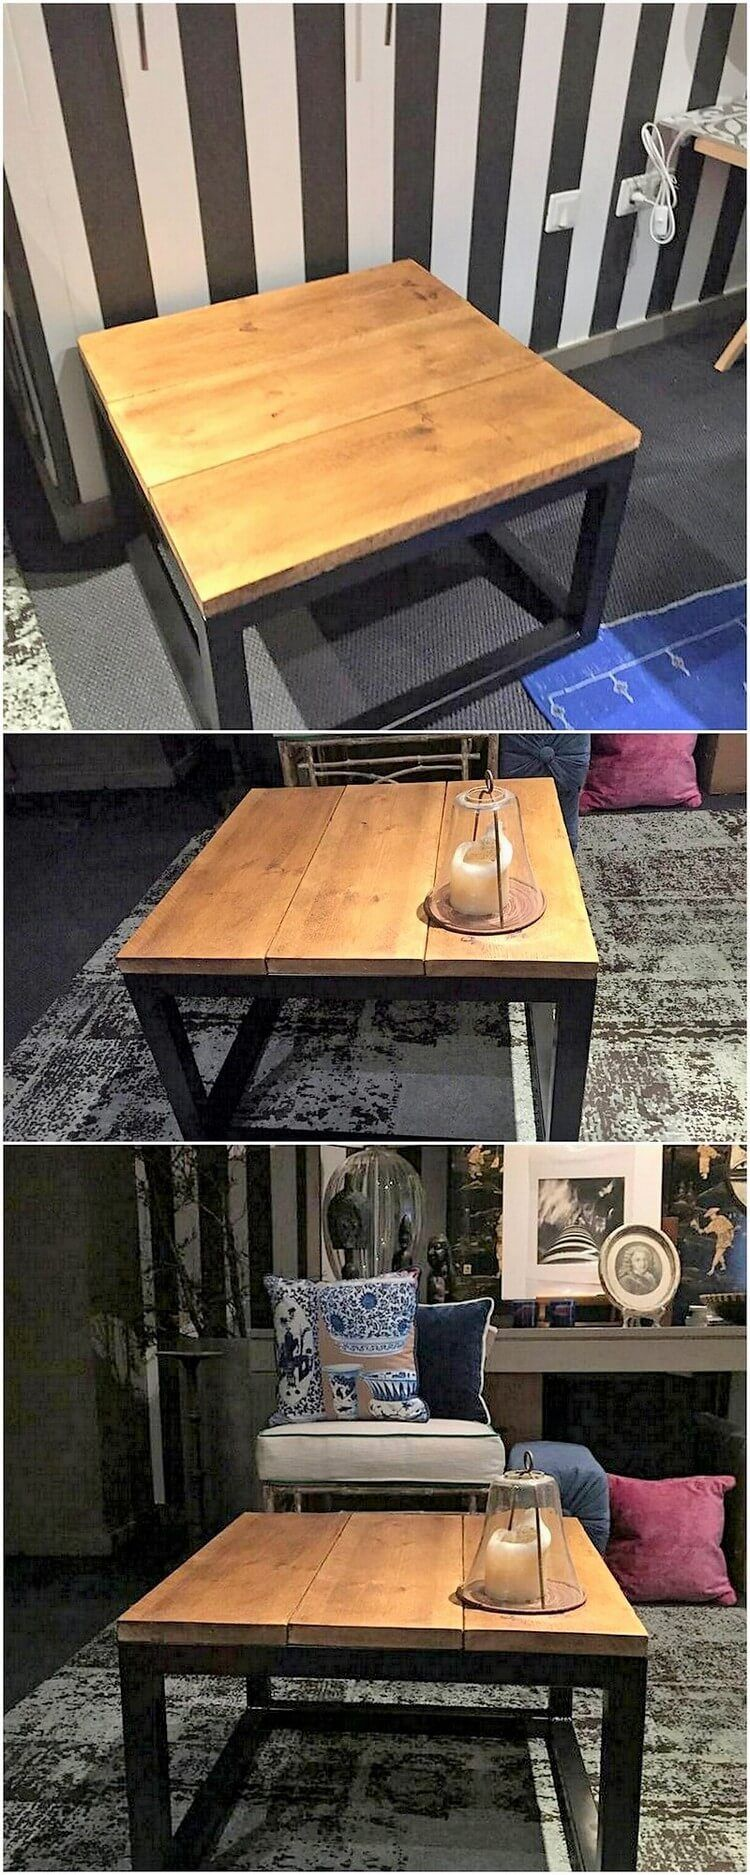 Eye Catching Ideas for Wood Pallets Recycling